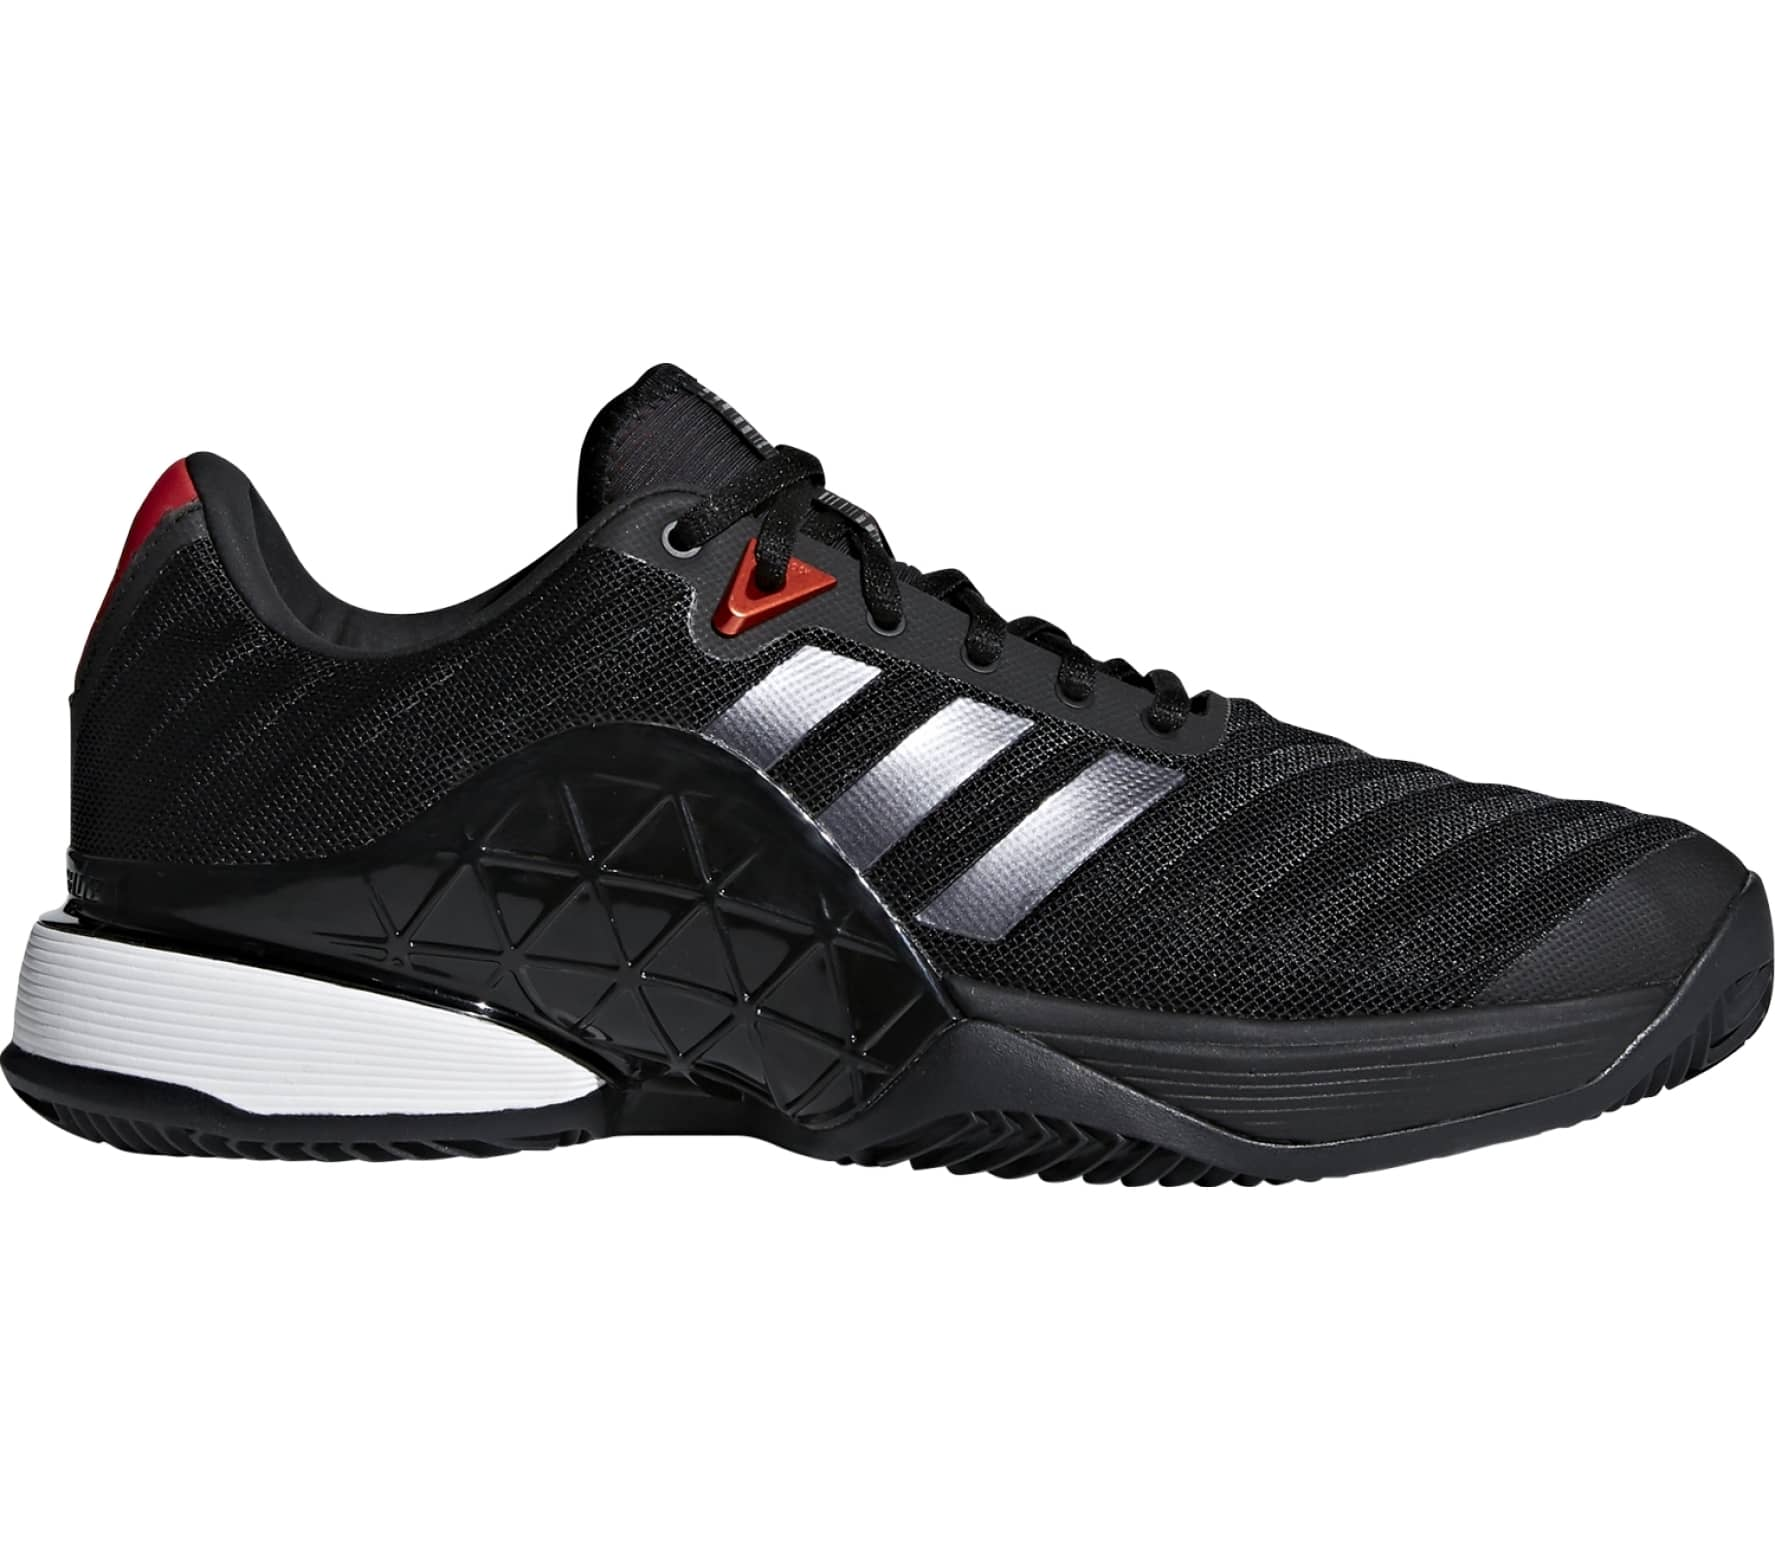 new concept 35d52 9b4e1 Adidas - Barricade 2018 clay men s tennis shoes (black)